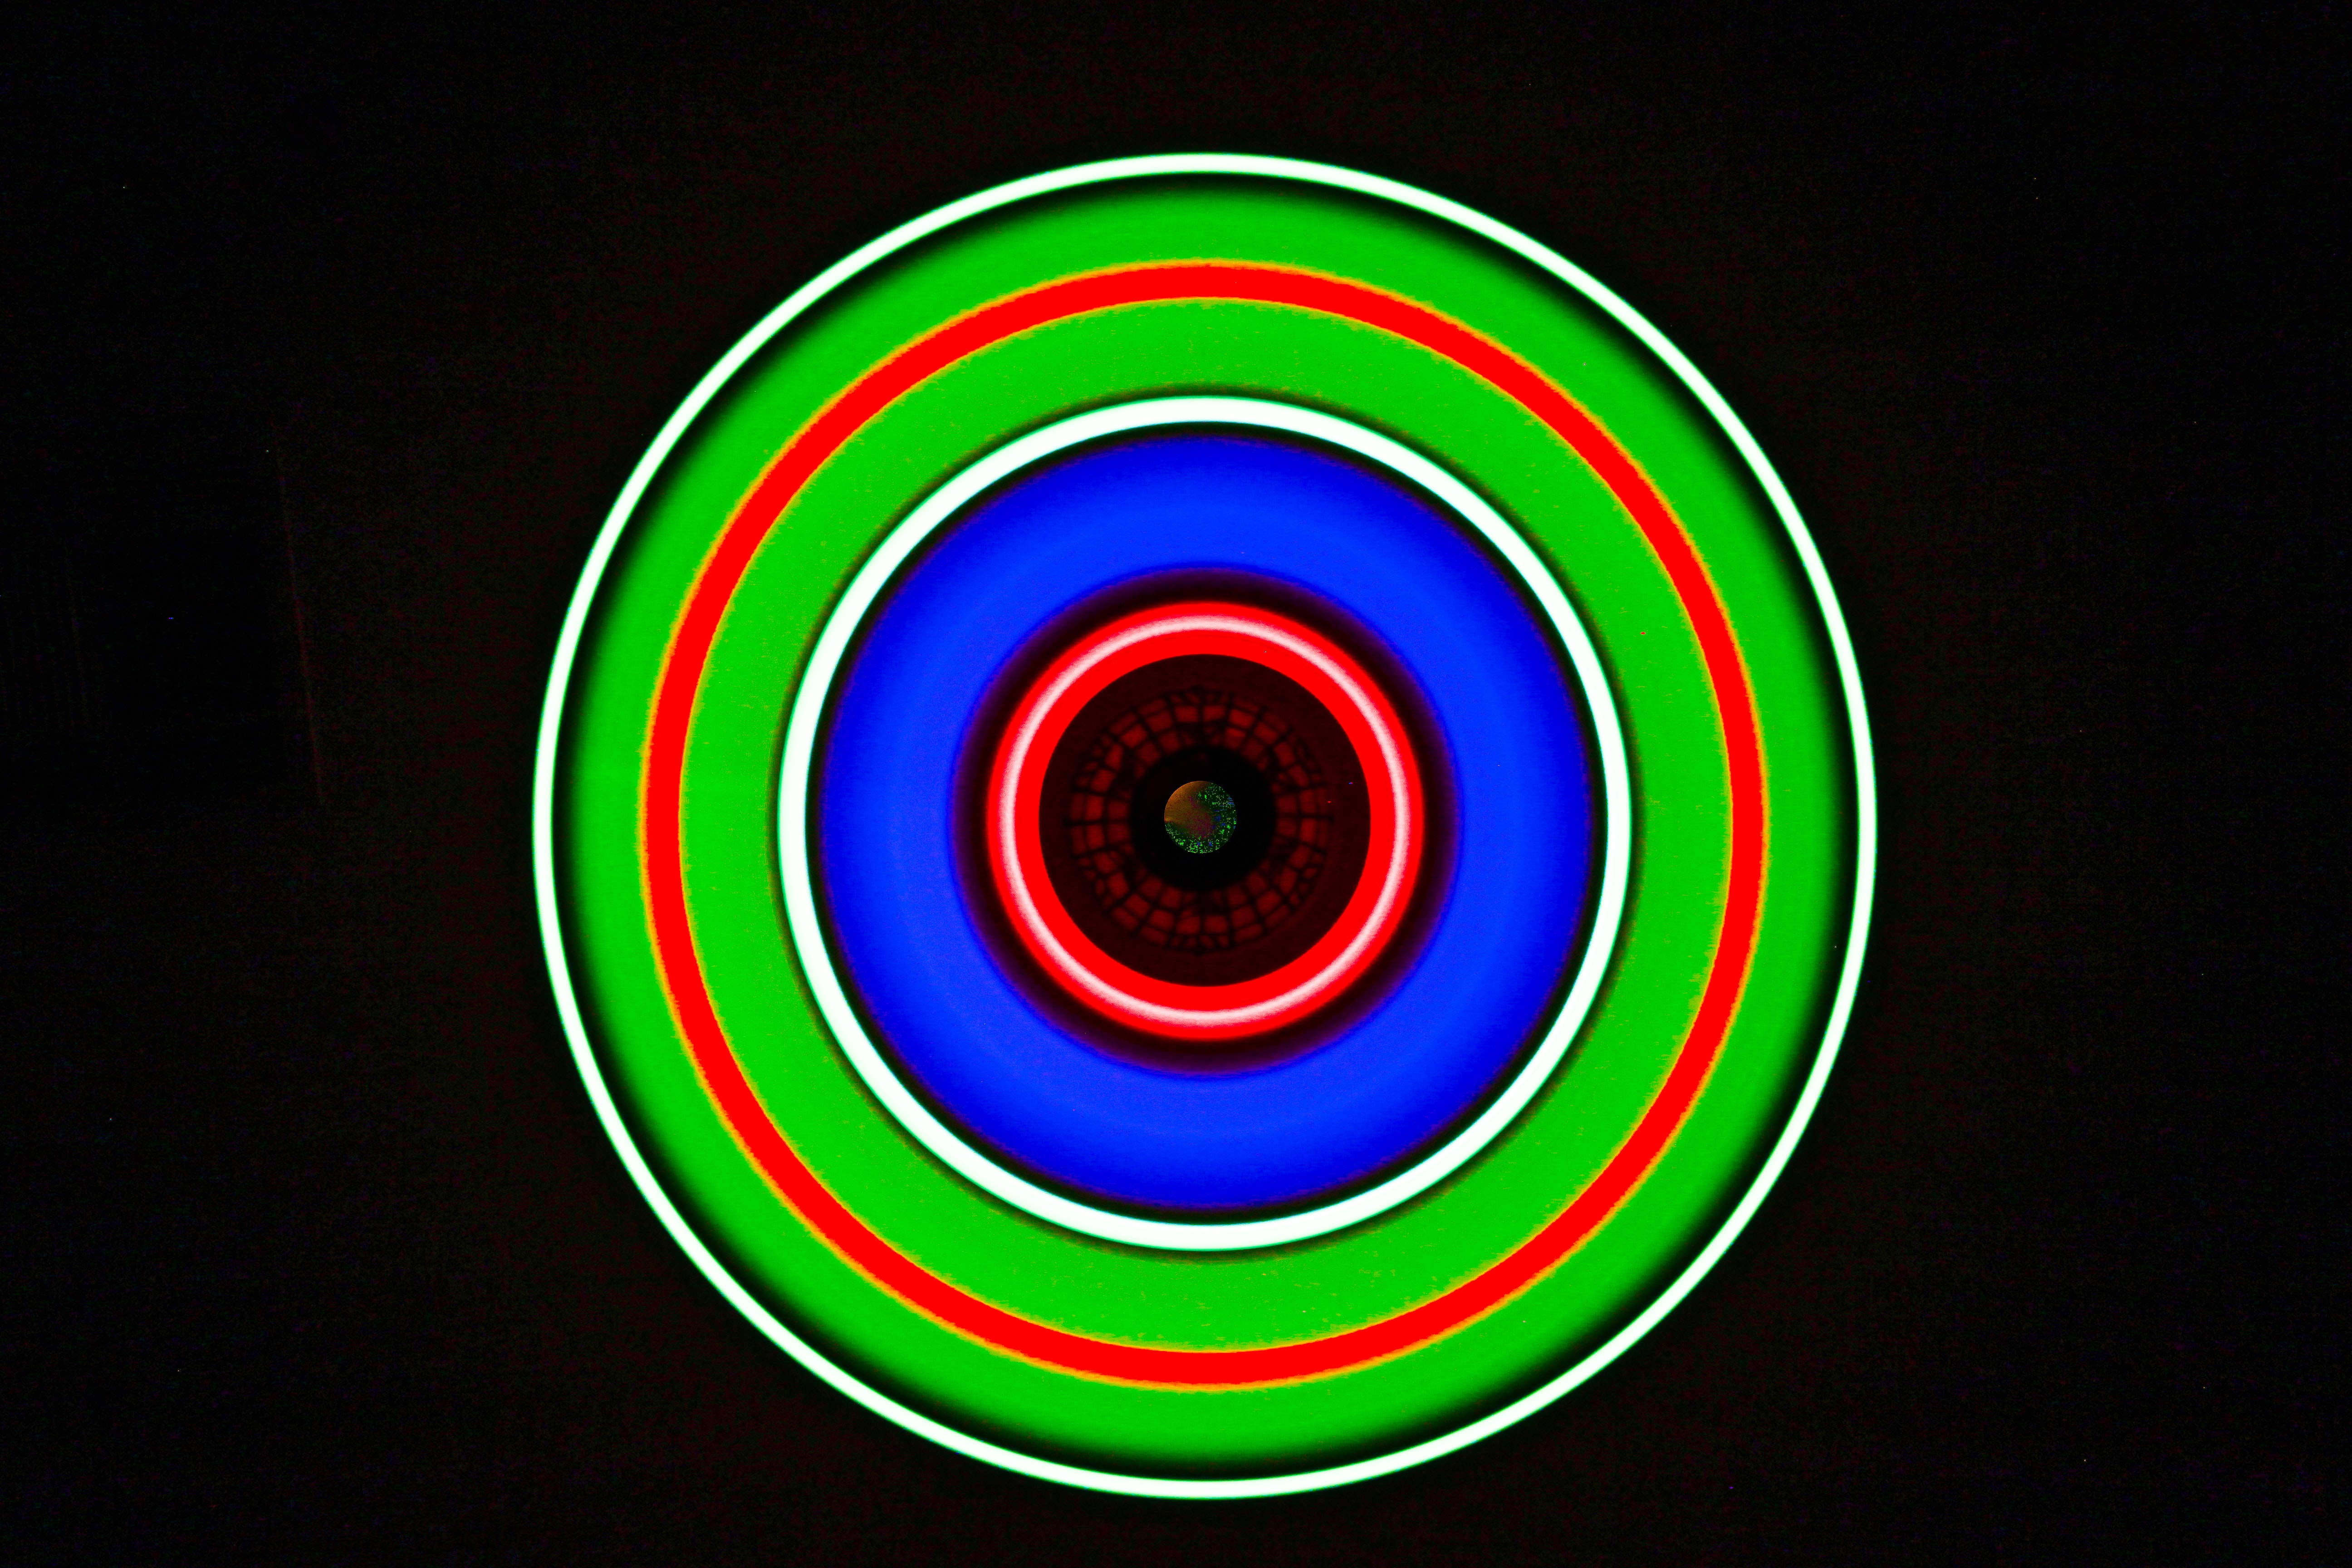 84293 download wallpaper Miscellanea, Miscellaneous, Circle, Glow, Neon, Multicolored, Motley screensavers and pictures for free